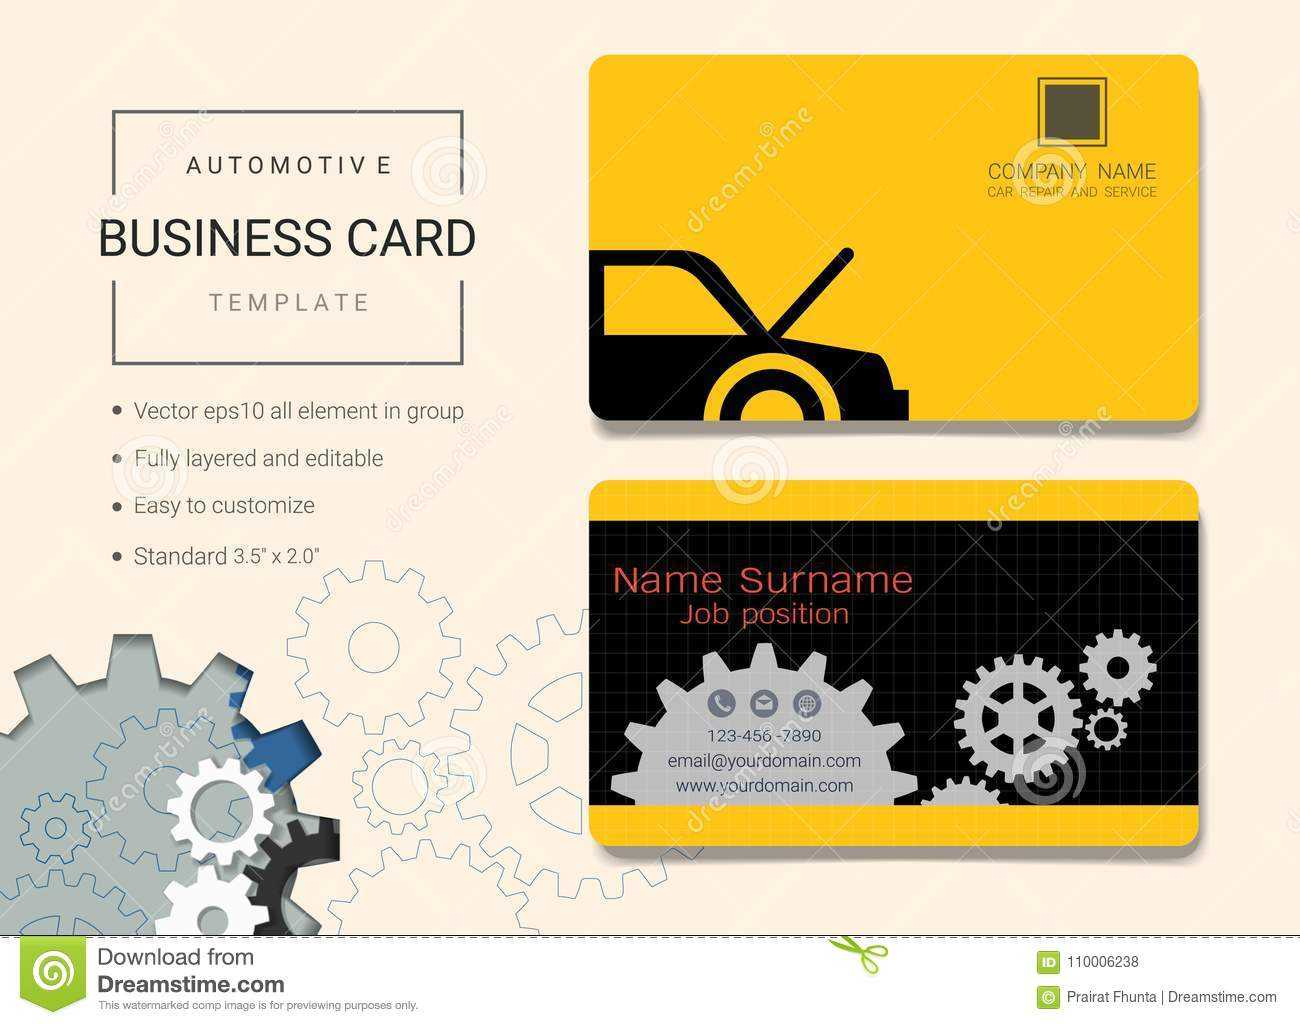 Automotive Business Card Or Name Card Template. Stock Vector Regarding Automotive Business Card Templates